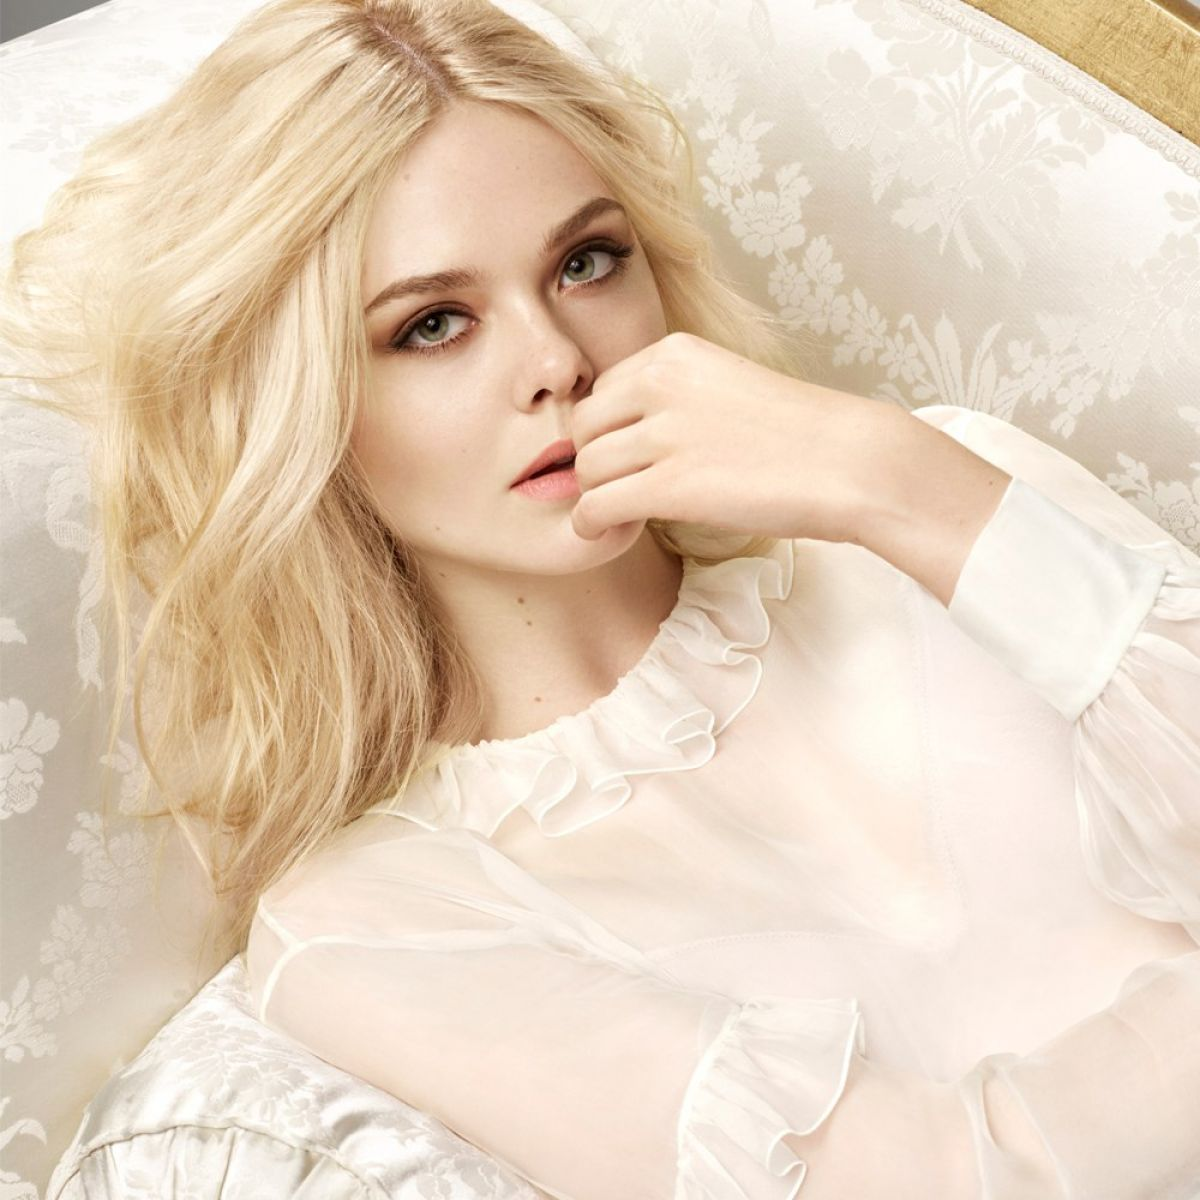 Elle Fanning Loreal Paris compaign - Elle Fanning Net Worth, Family, Movies, Private Life, Pictures and Wallpaper